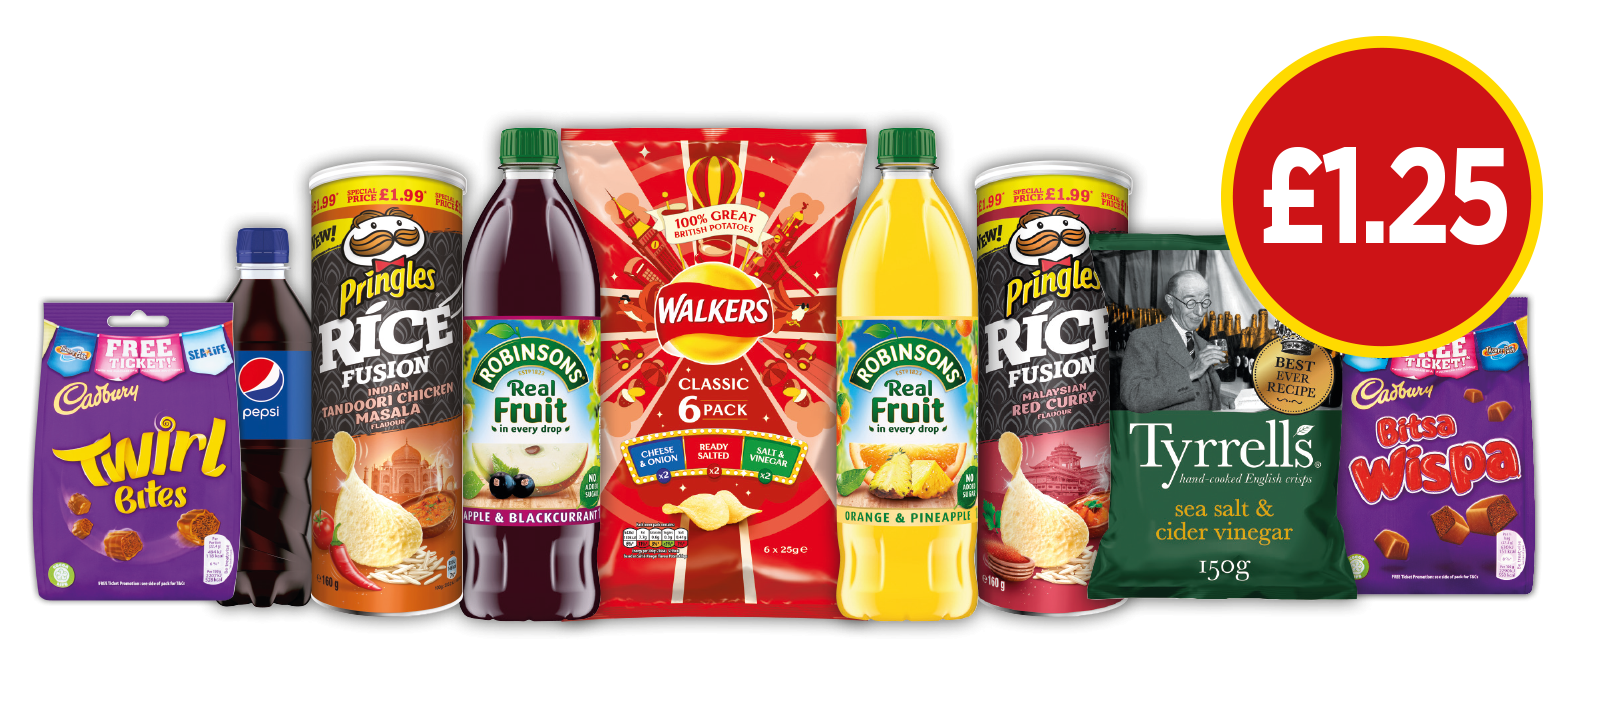 £1.25 DEALS: Pringles Malaysian Red, Pringle Rice Chicken Masala, Cadbury Dairy Milk Bitsa Wispa, Cadbury Giant Buttons, Tyrrells Sea Salt & Cider Vinegar, Robinsons Apple & Blackcurrant NAS - £1.25 at Budgens